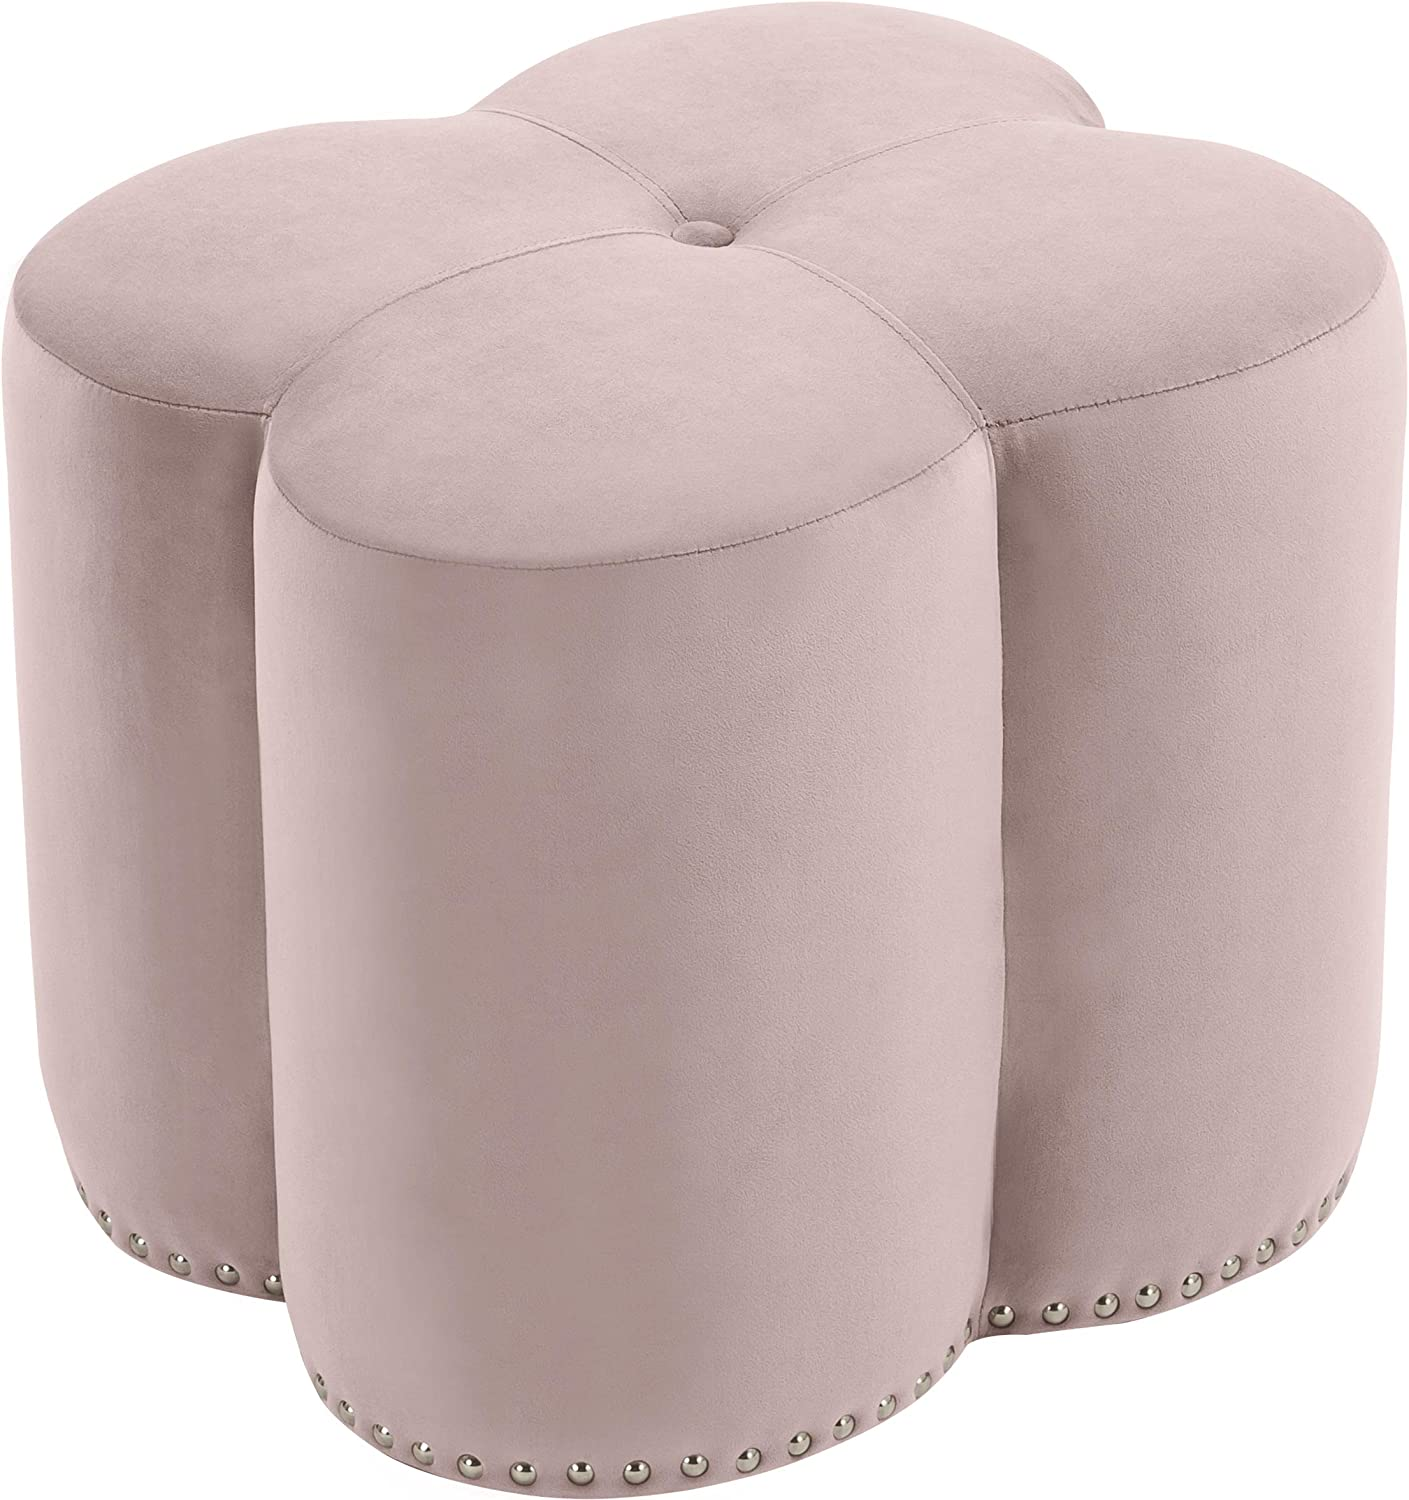 Meridian Furniture Clover Collection Modern | Contemporary Velvet Upholstered Flower Shaped Ottoman with Silver Nailheads, 19